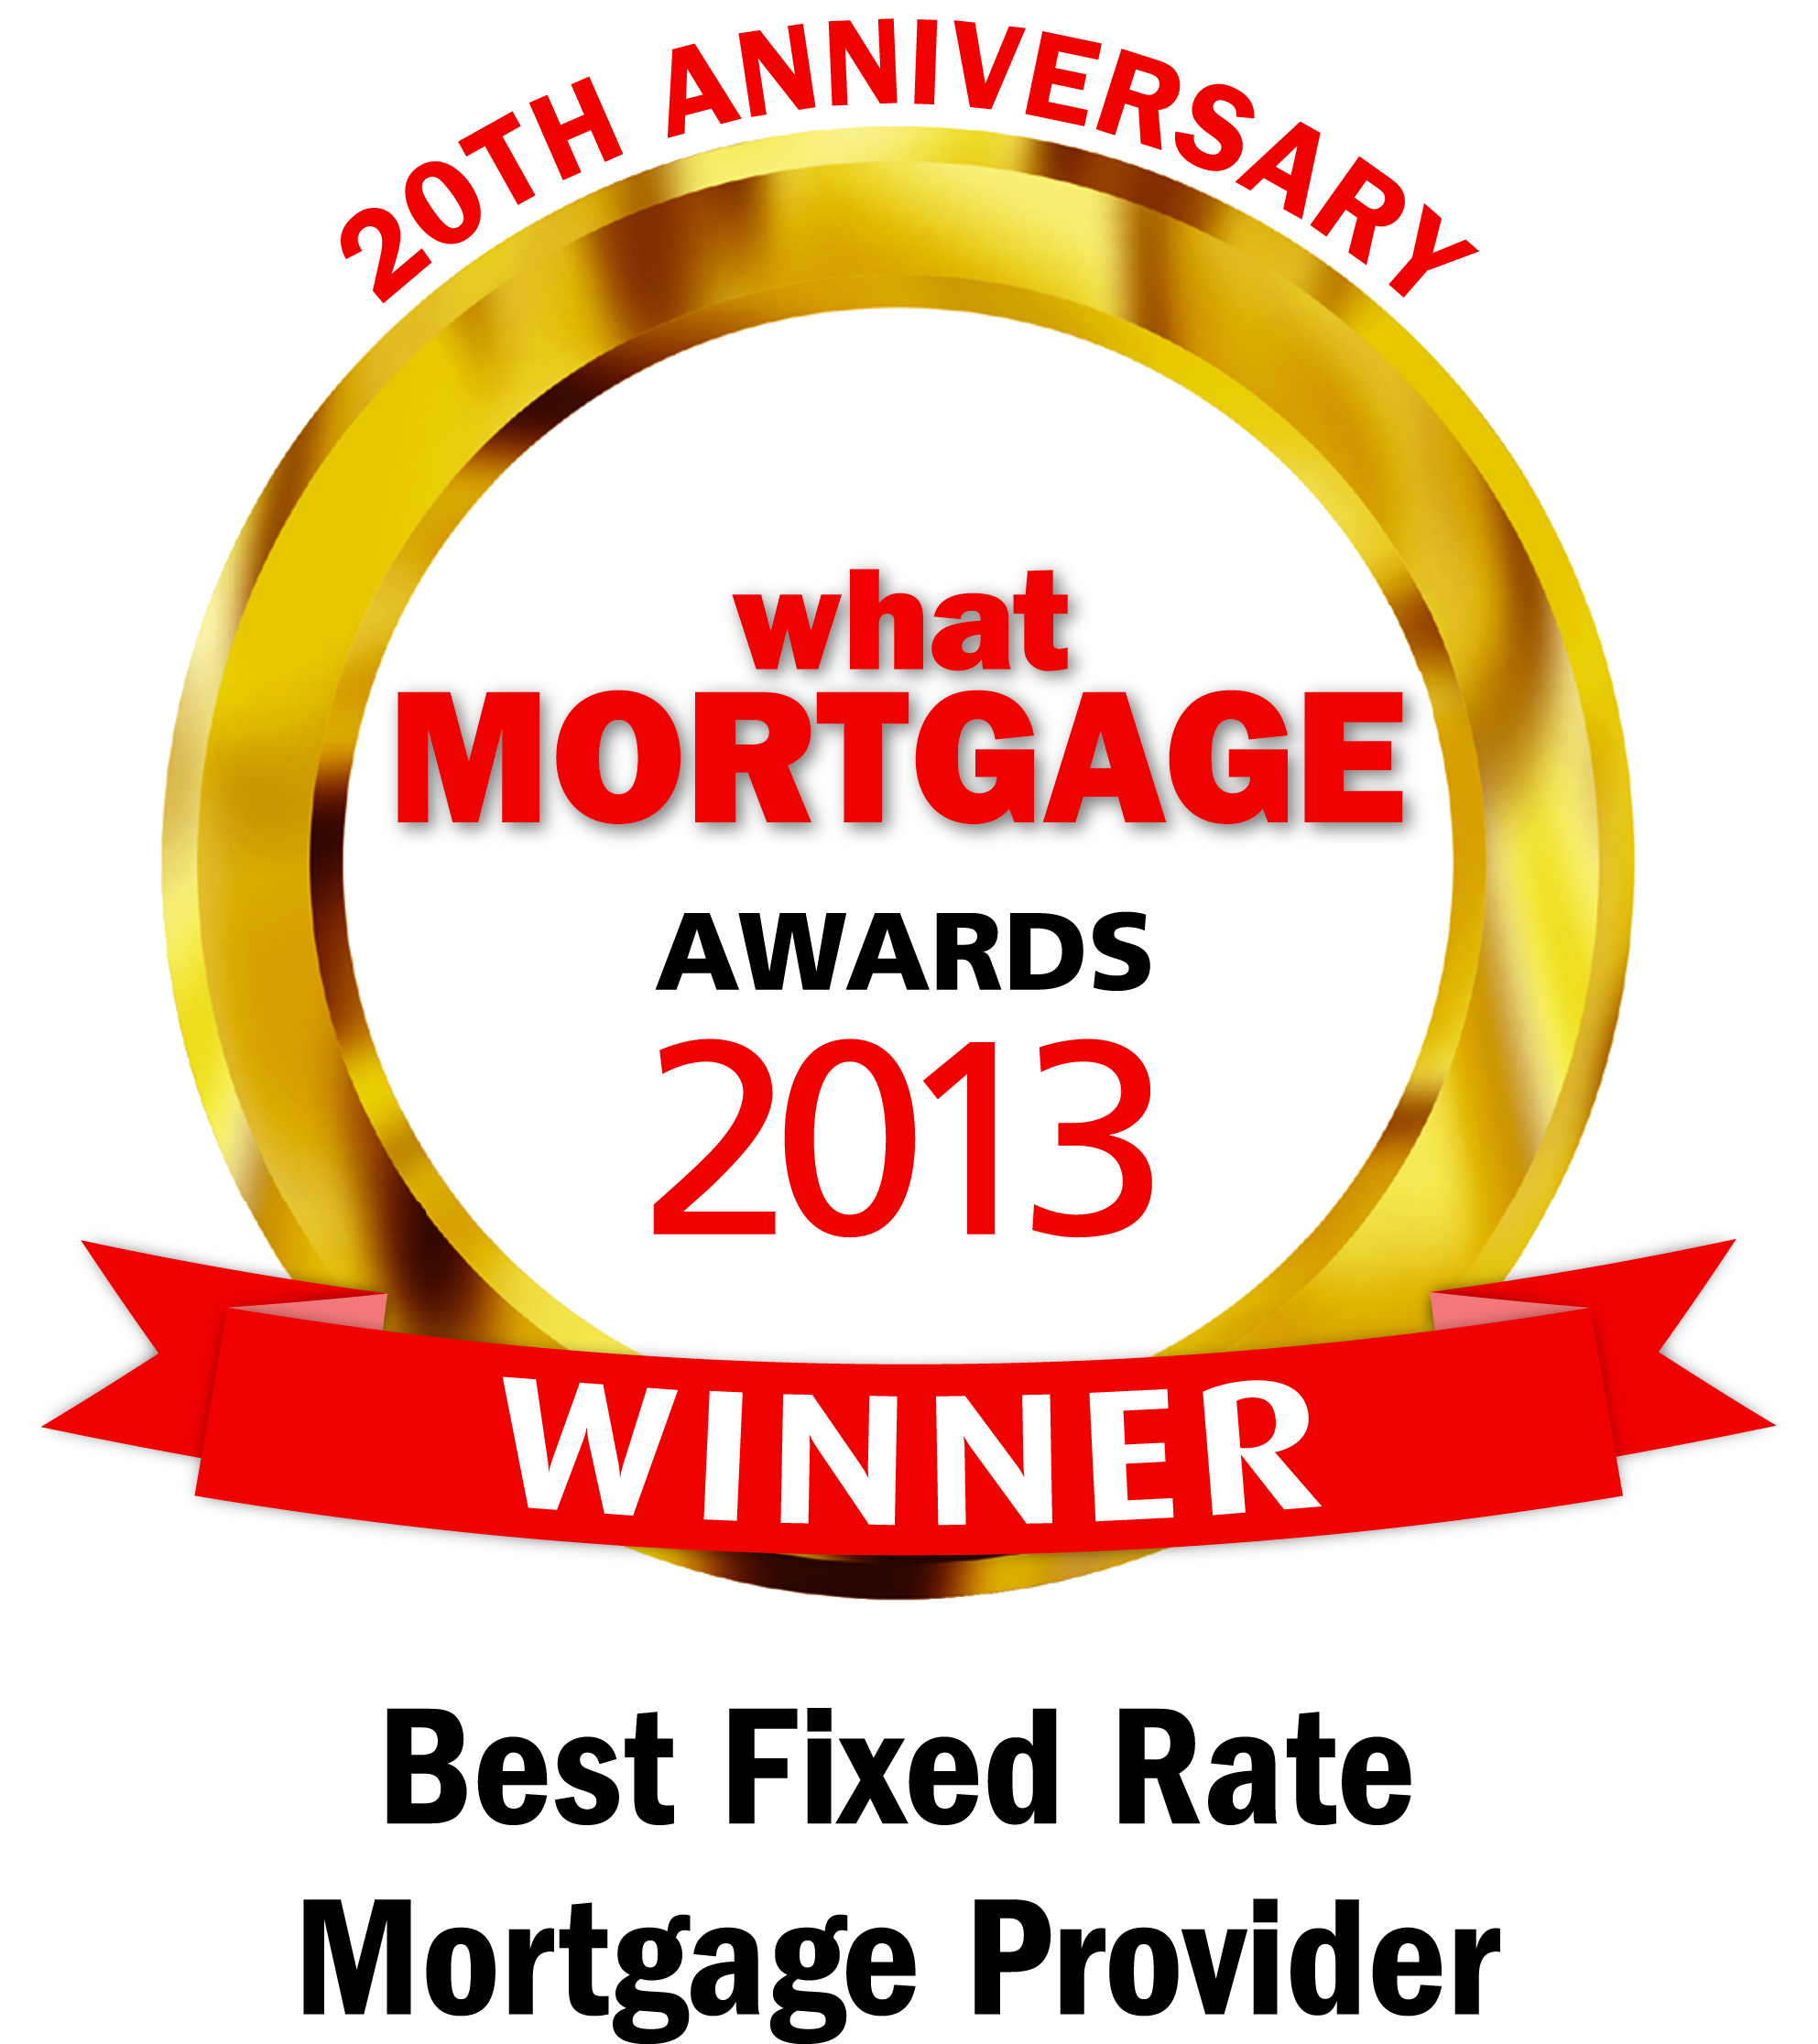 Best fixed rate mortgage provider award 2013